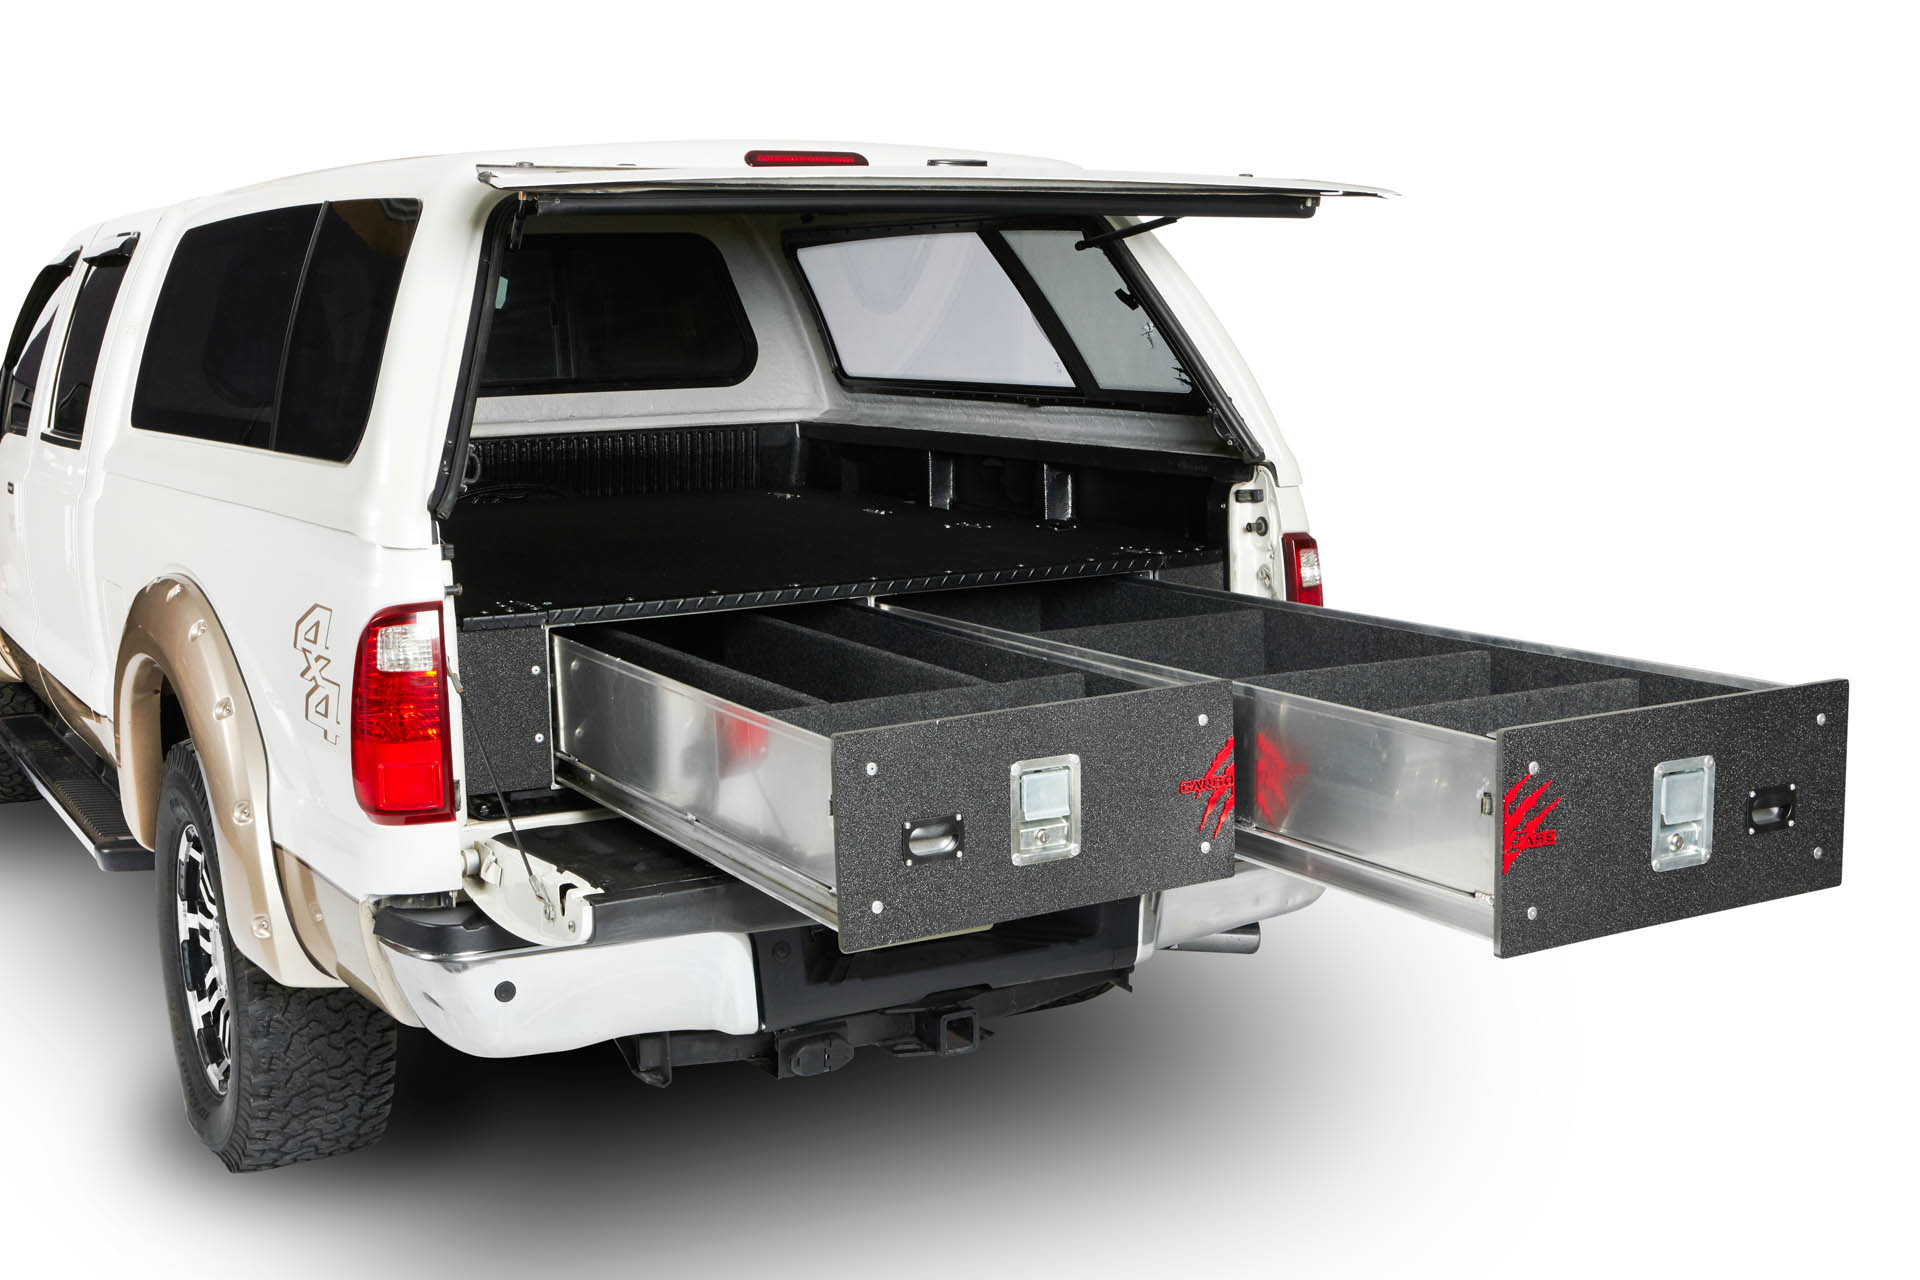 Cargo Ease Cargo Locker Base 9 Inch Dual Drawer System 07-Pres Toyota Tundra Crew Max